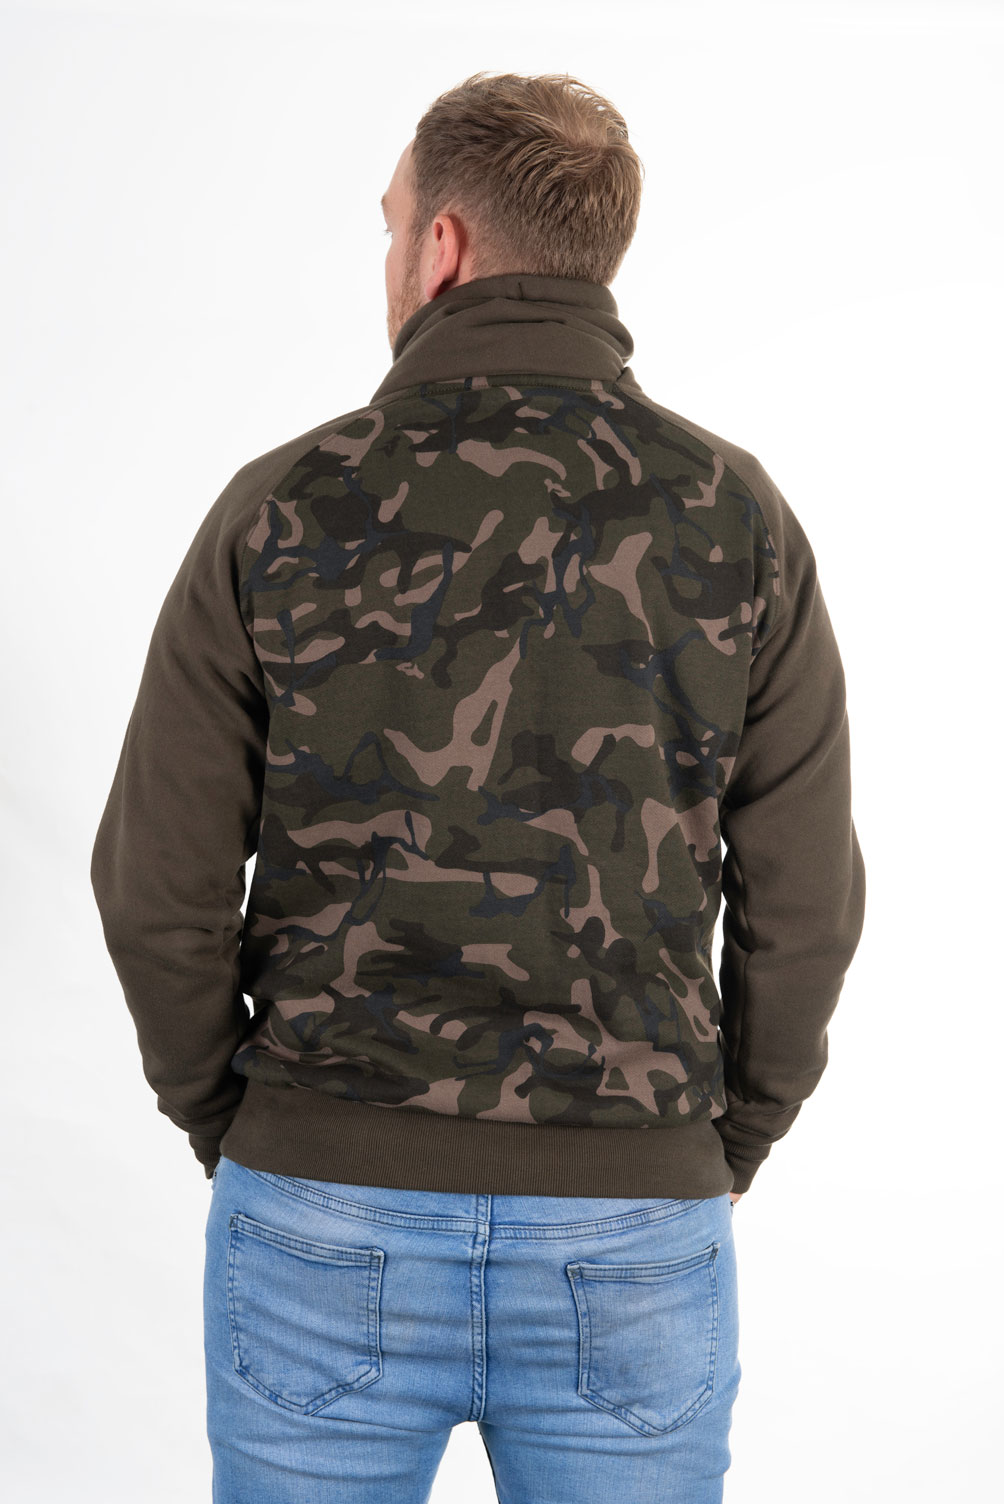 khaki_camo_high_neck_backjpg